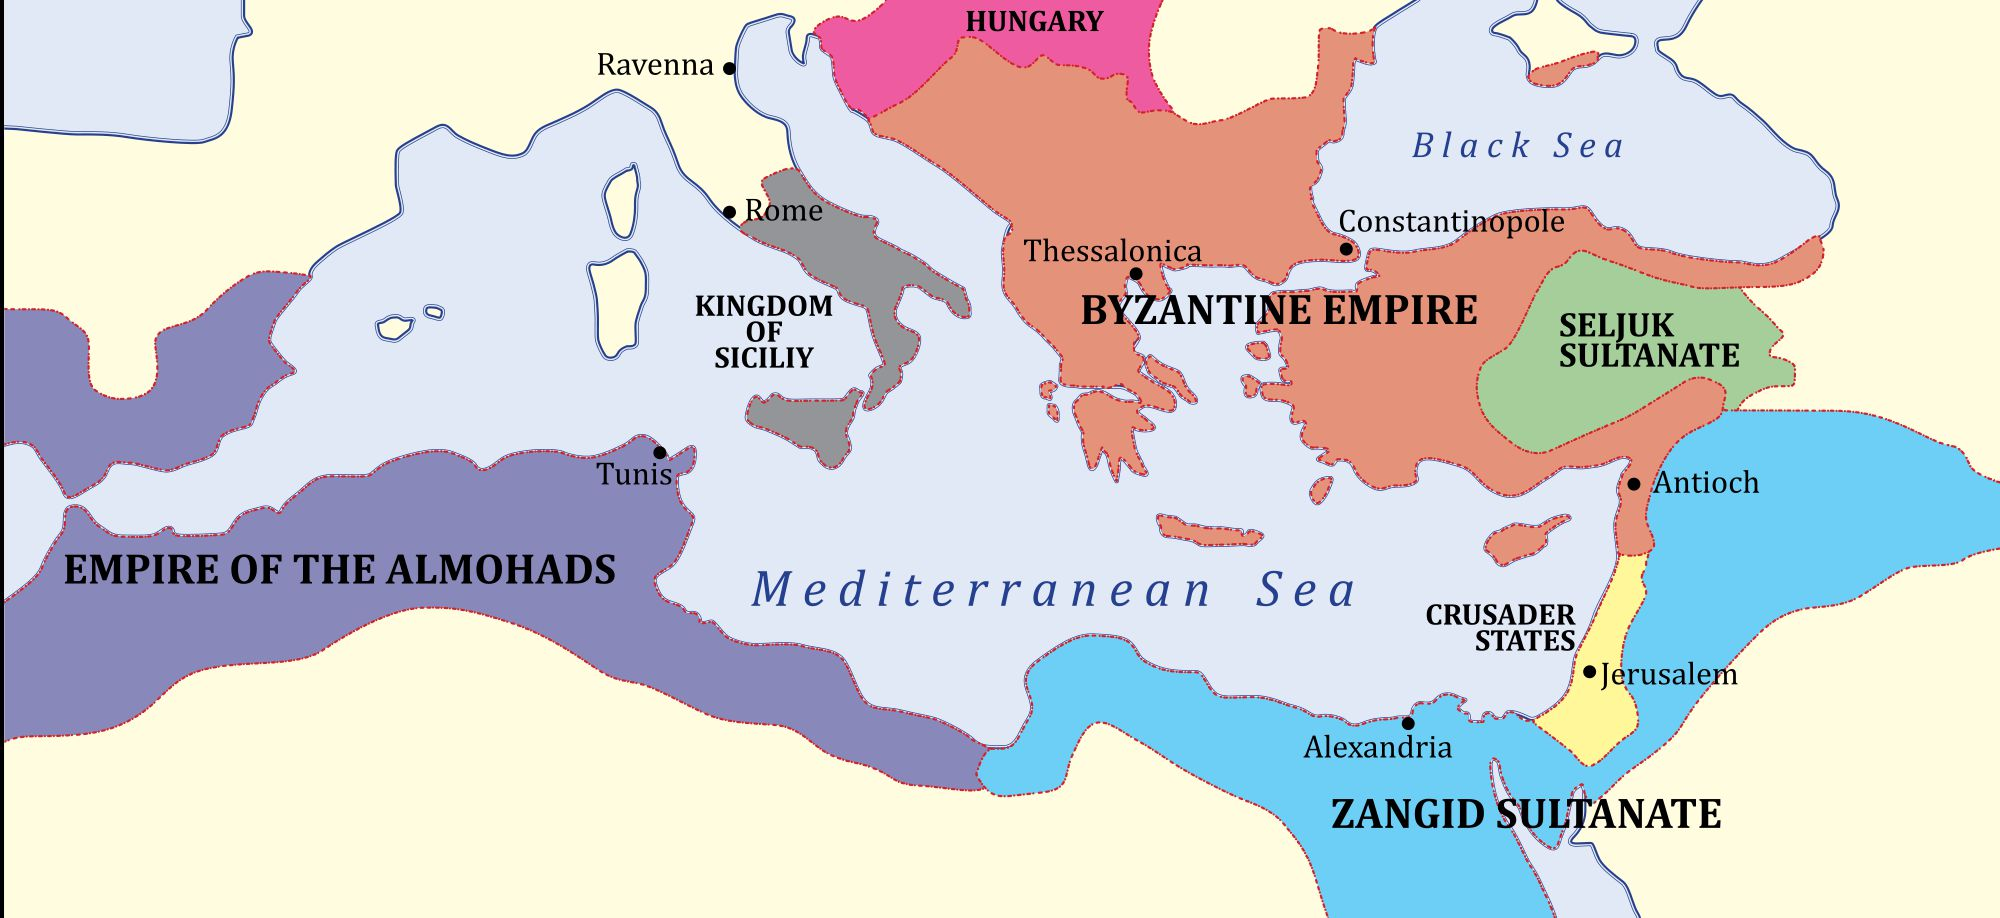 Byzantine Empire in orange